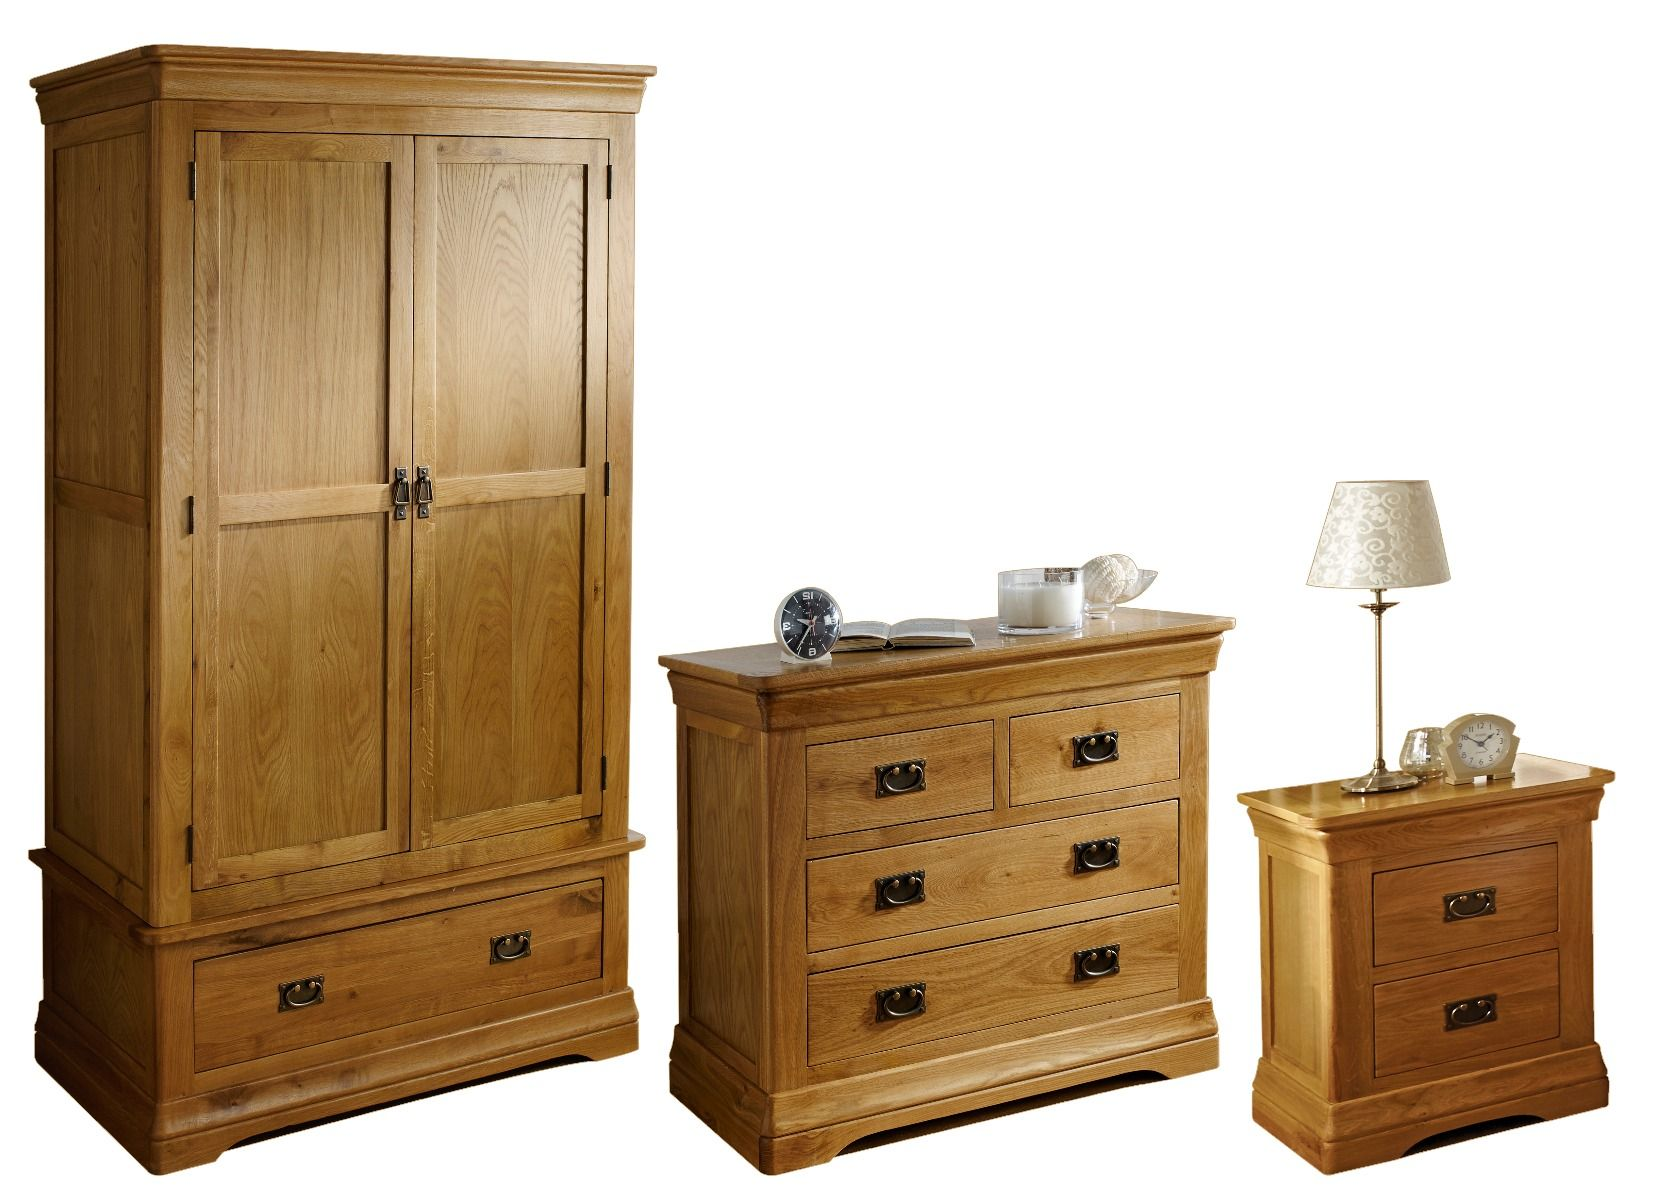 Farmhouse Oak Bedroom Furniture Set - Double wardrobe, 9 over 9 chest & 9  drawer bedside - AUTUMN SALE